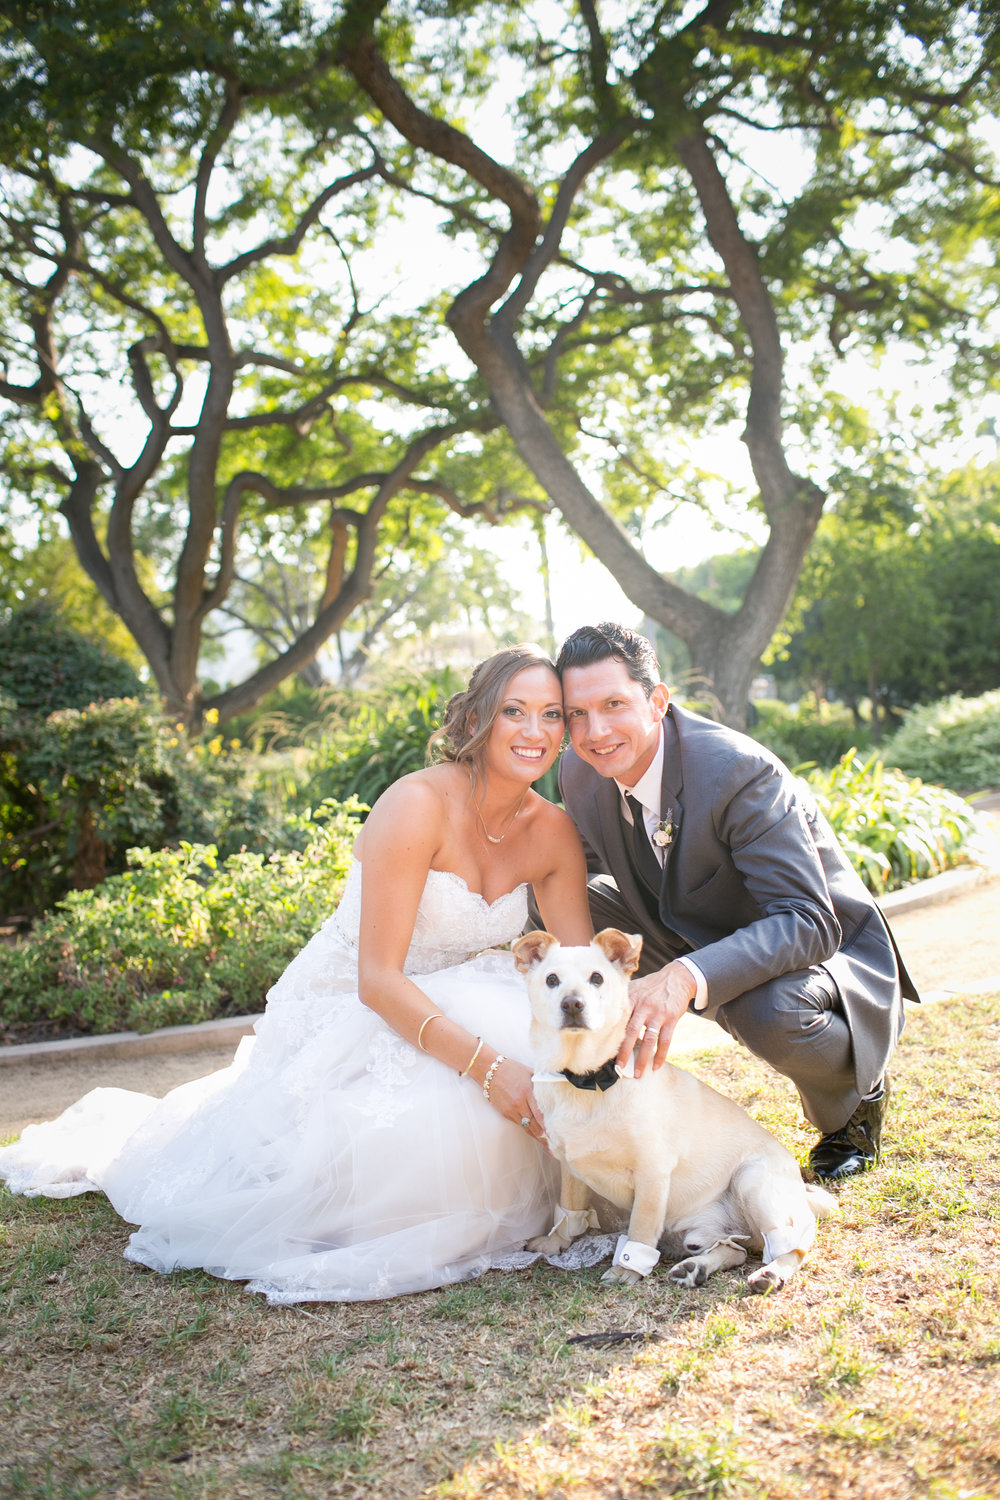 www.santabarbarawedding.com | Kelsey Crews | Dog and Bride and Groom